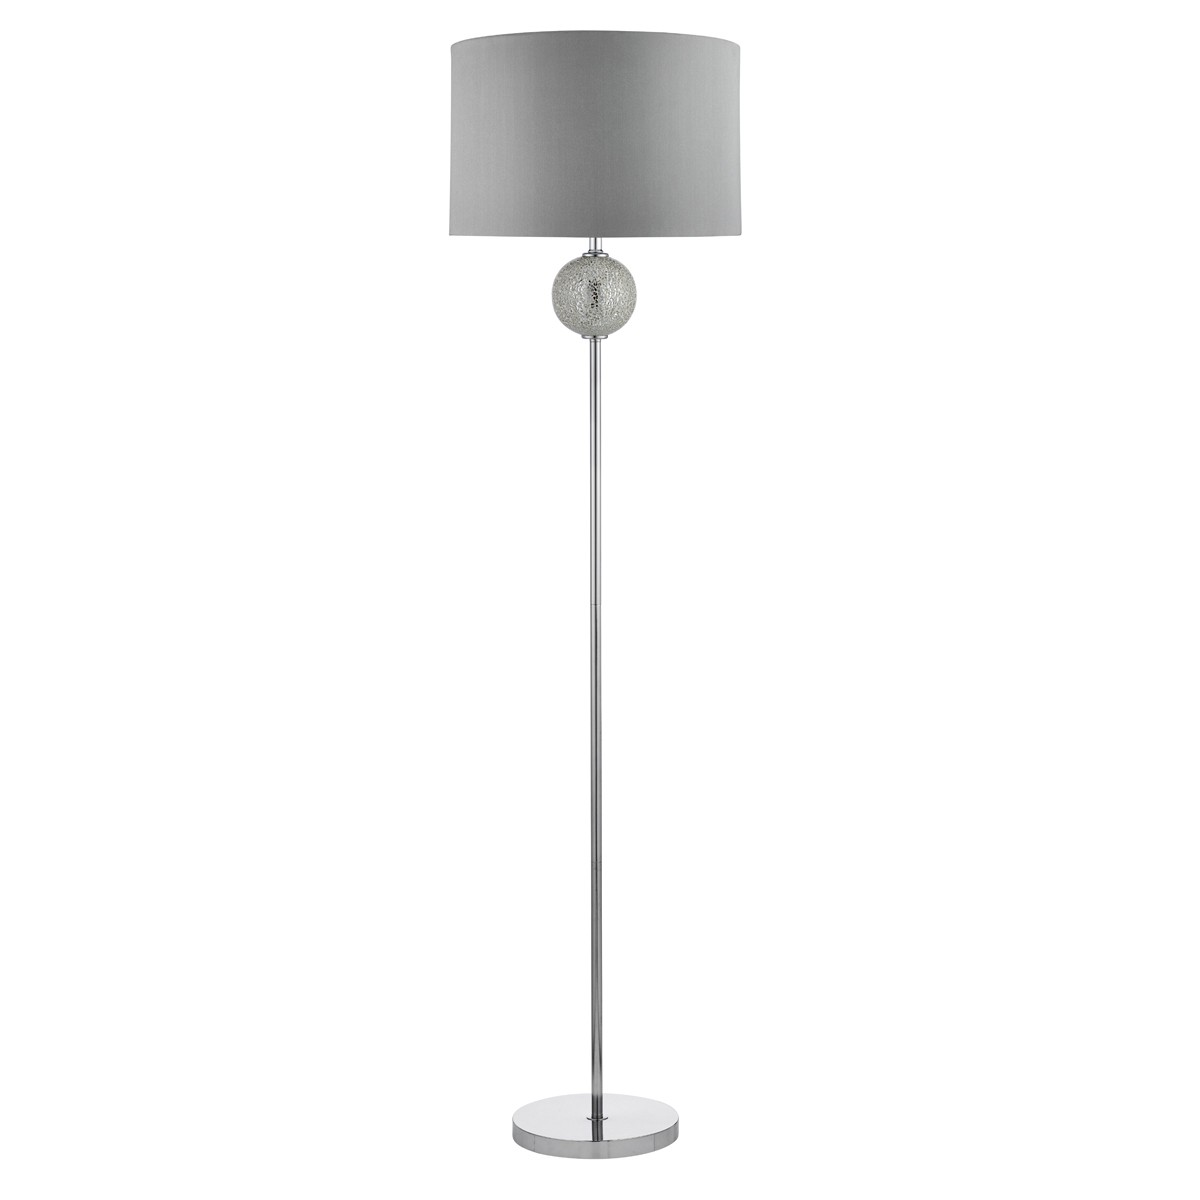 Good SILVER FLOOR LAMP WITH MOSAIC BALL DESIGN